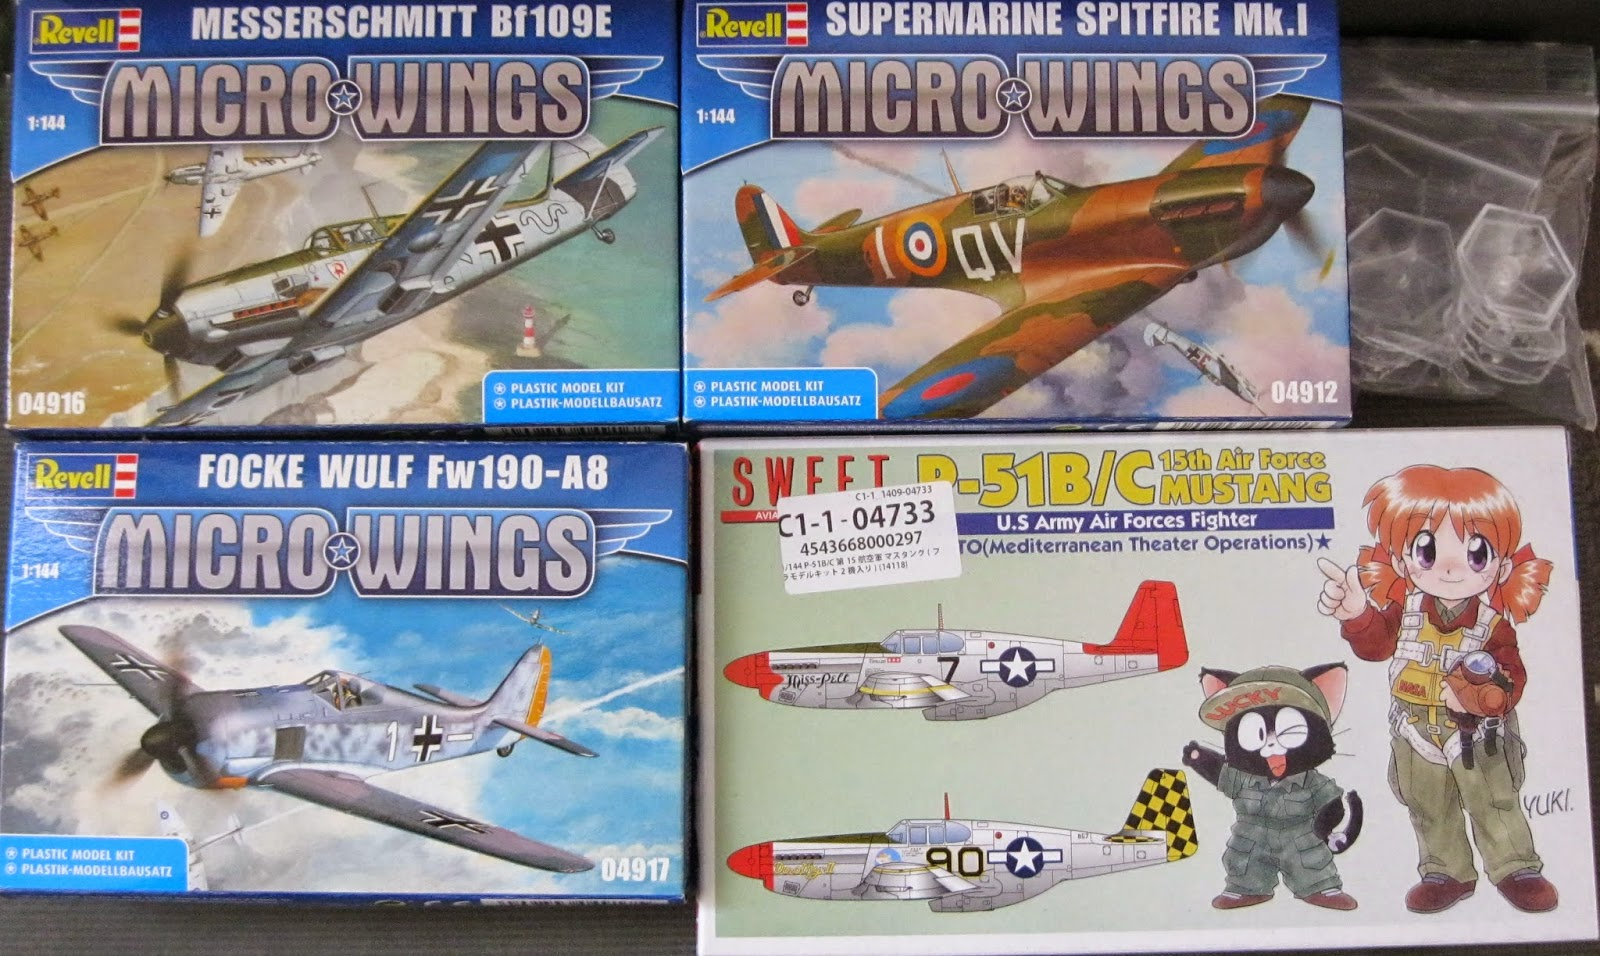 A Tale of Miniatures and Dice: WWII aviation 1/144 project